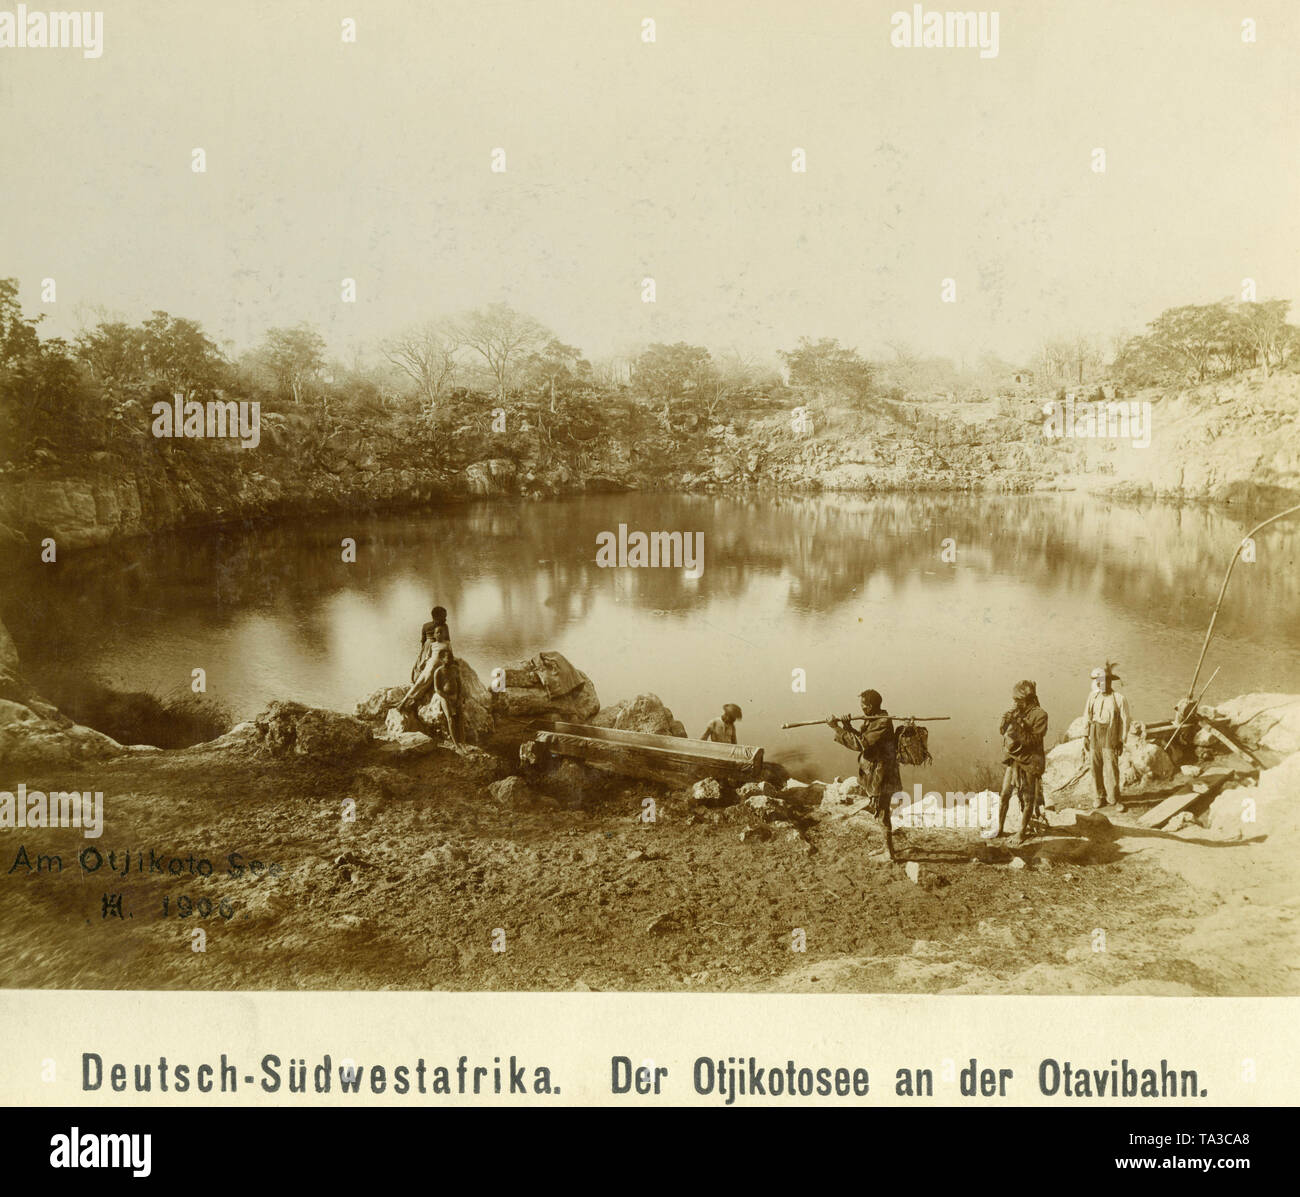 Boys and girls in some European clothing at the Otjikoto Lake in German Southwest Africa. - Stock Image